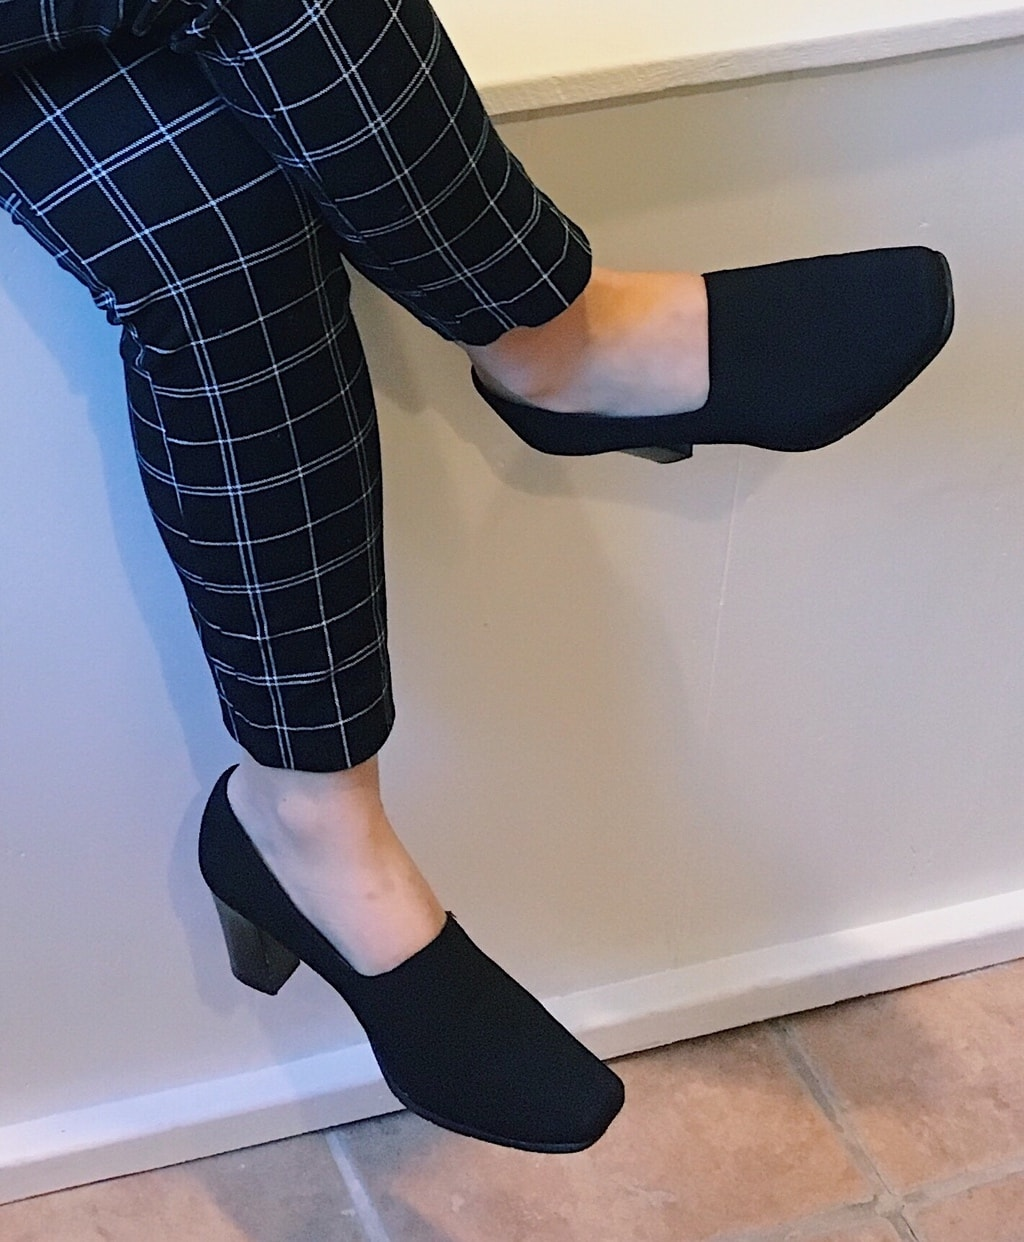 Yan Ni wears a pair of chunky-heeled black pumps that cover most of the top of her foot for comfort and modesty.